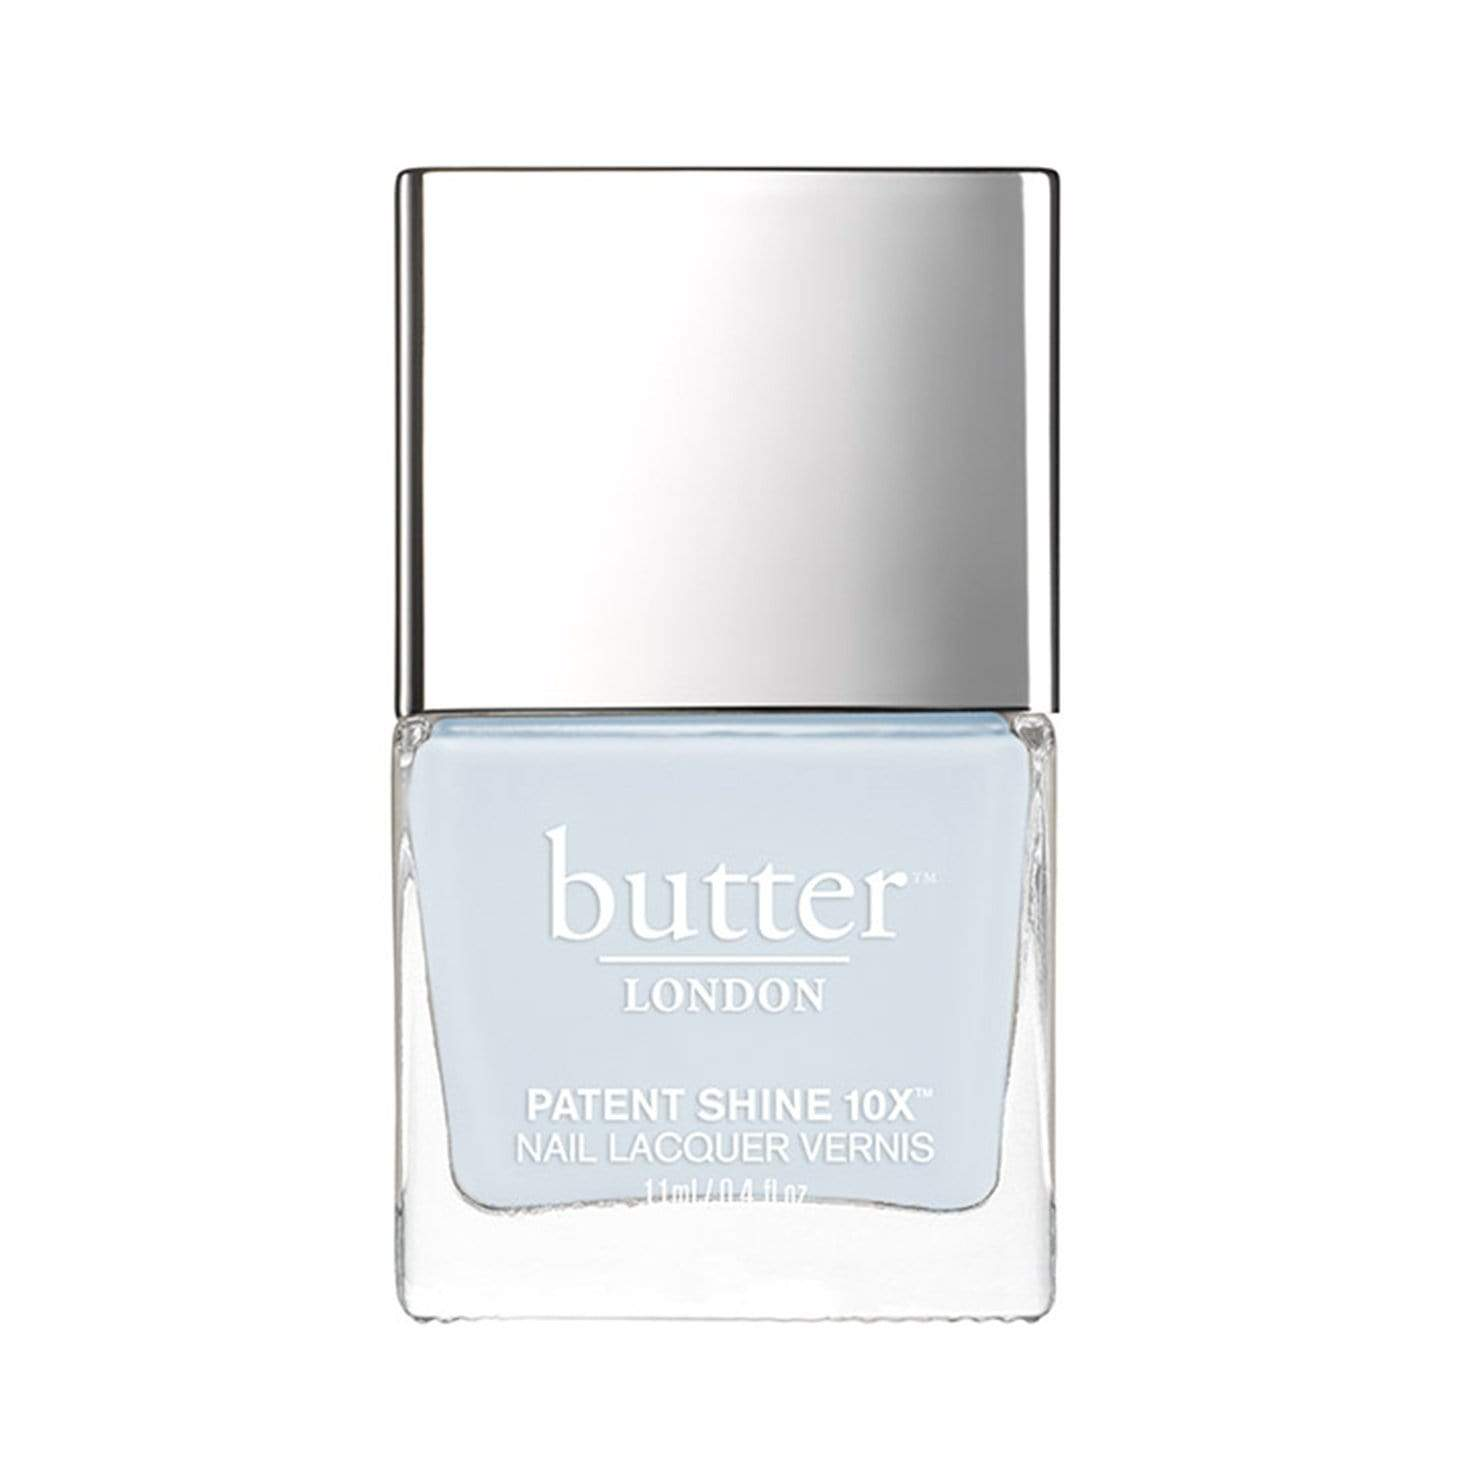 butter LONDON Candy Floss Patent Shine 10X Nail Lacquer